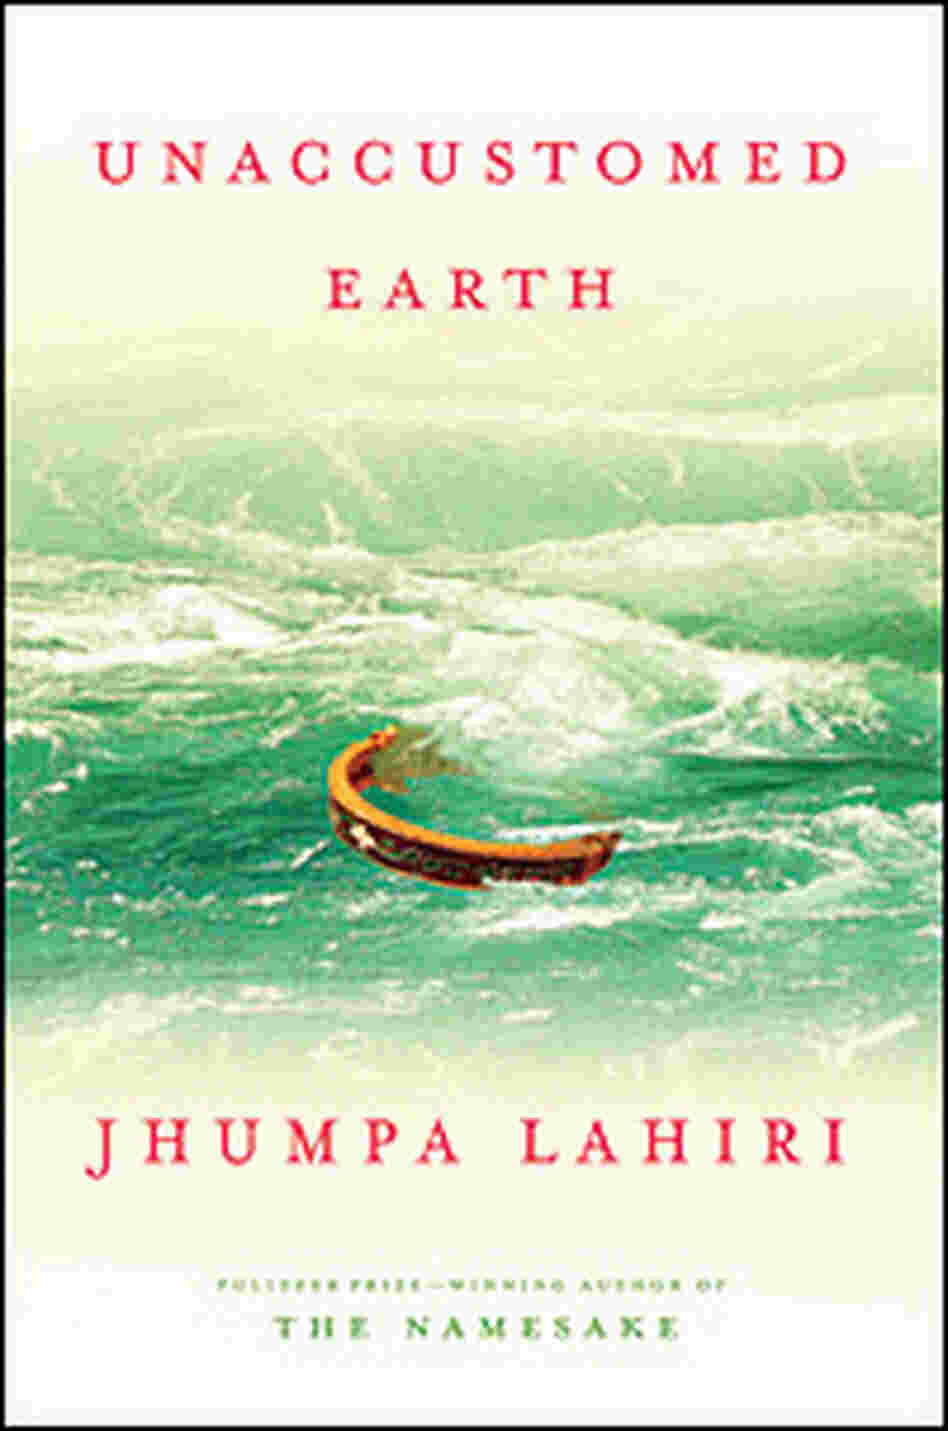 'Unaccustomed Earth' cover